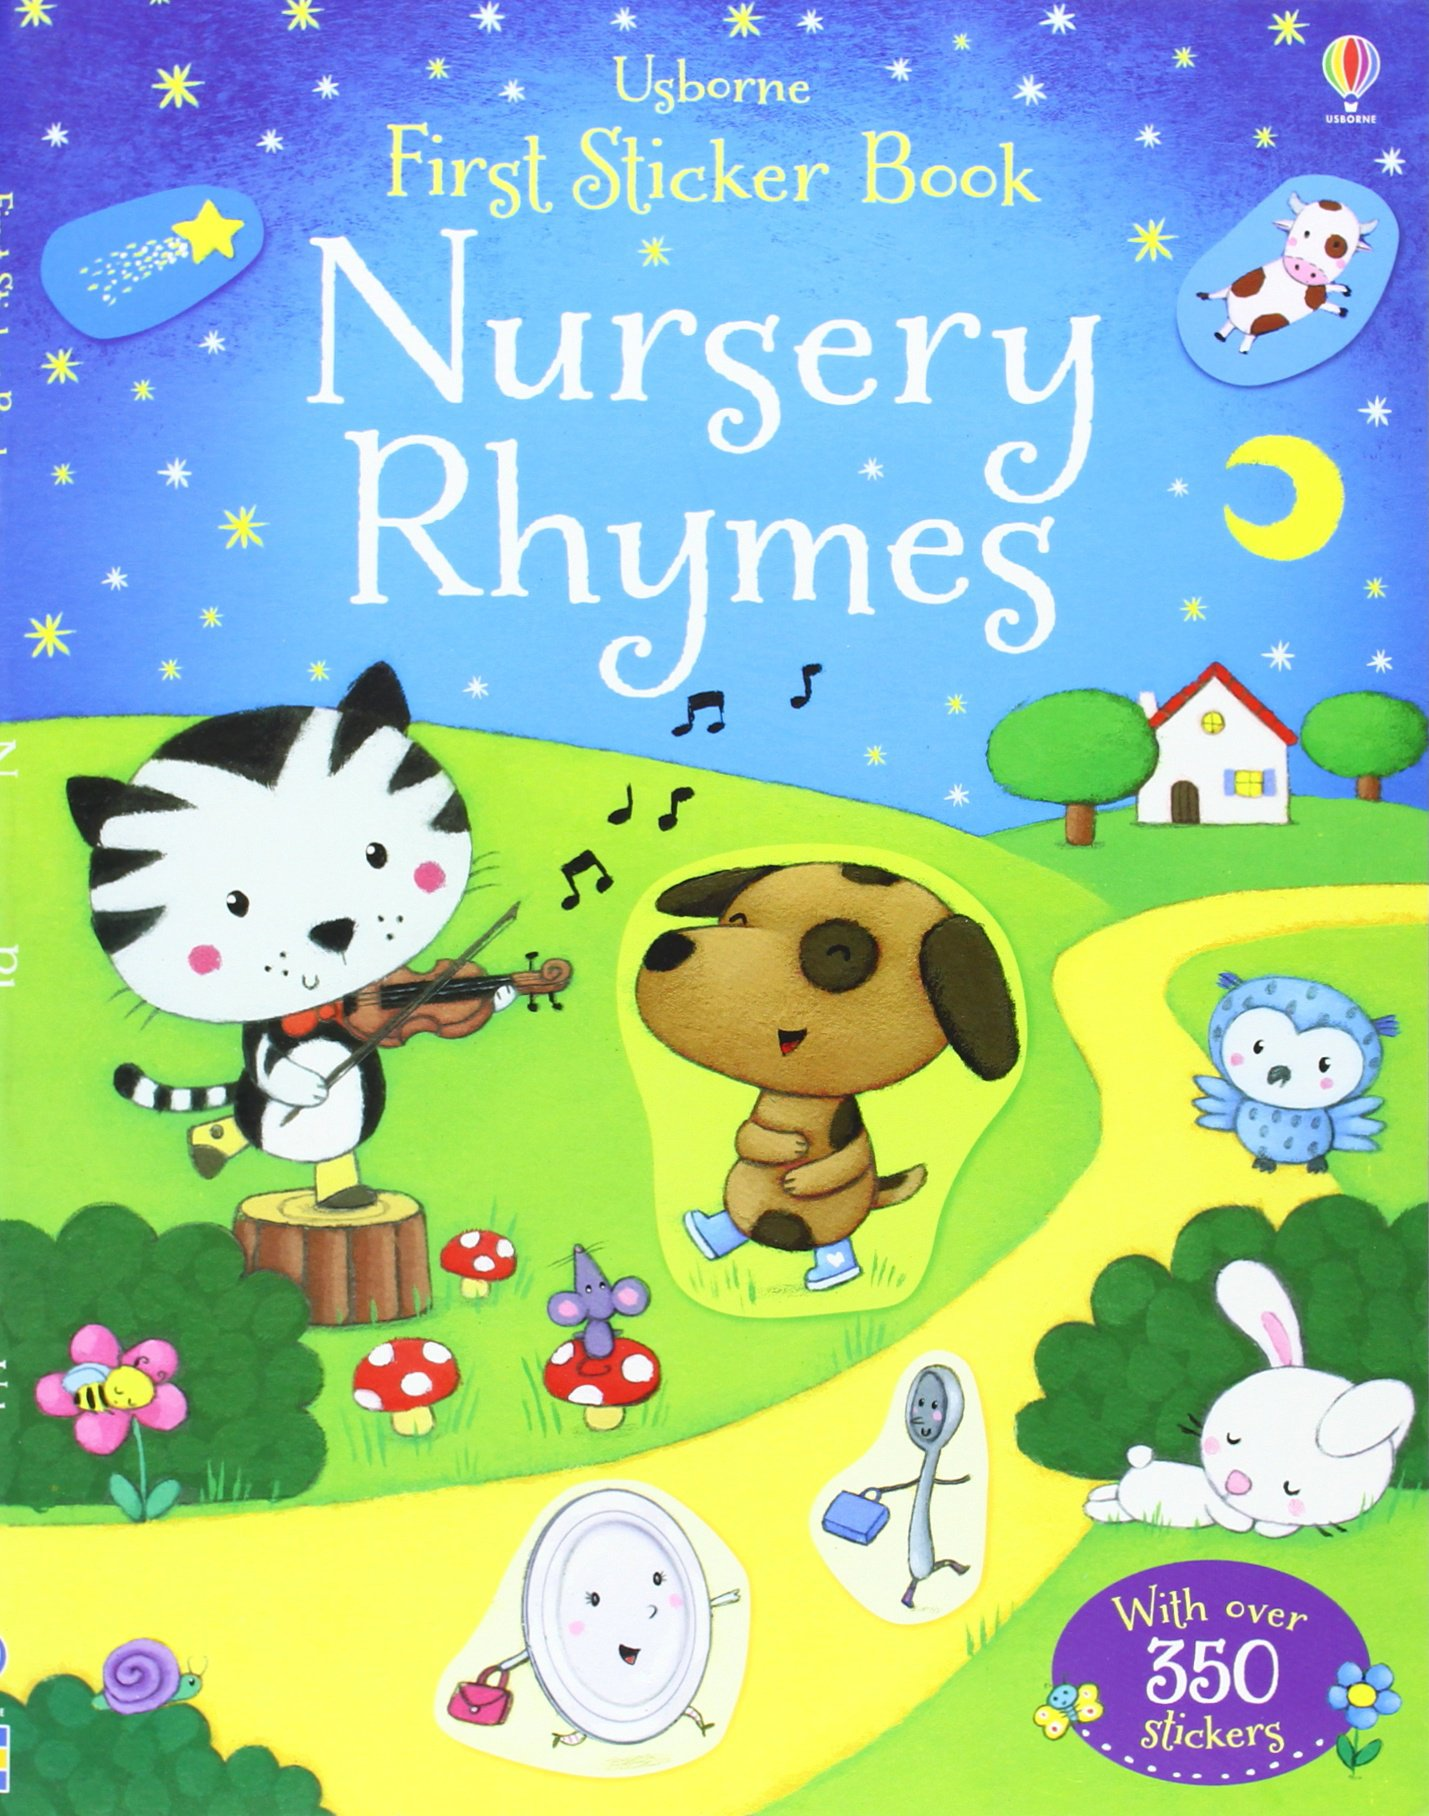 Nursery rhymes with pictures pdf Cached